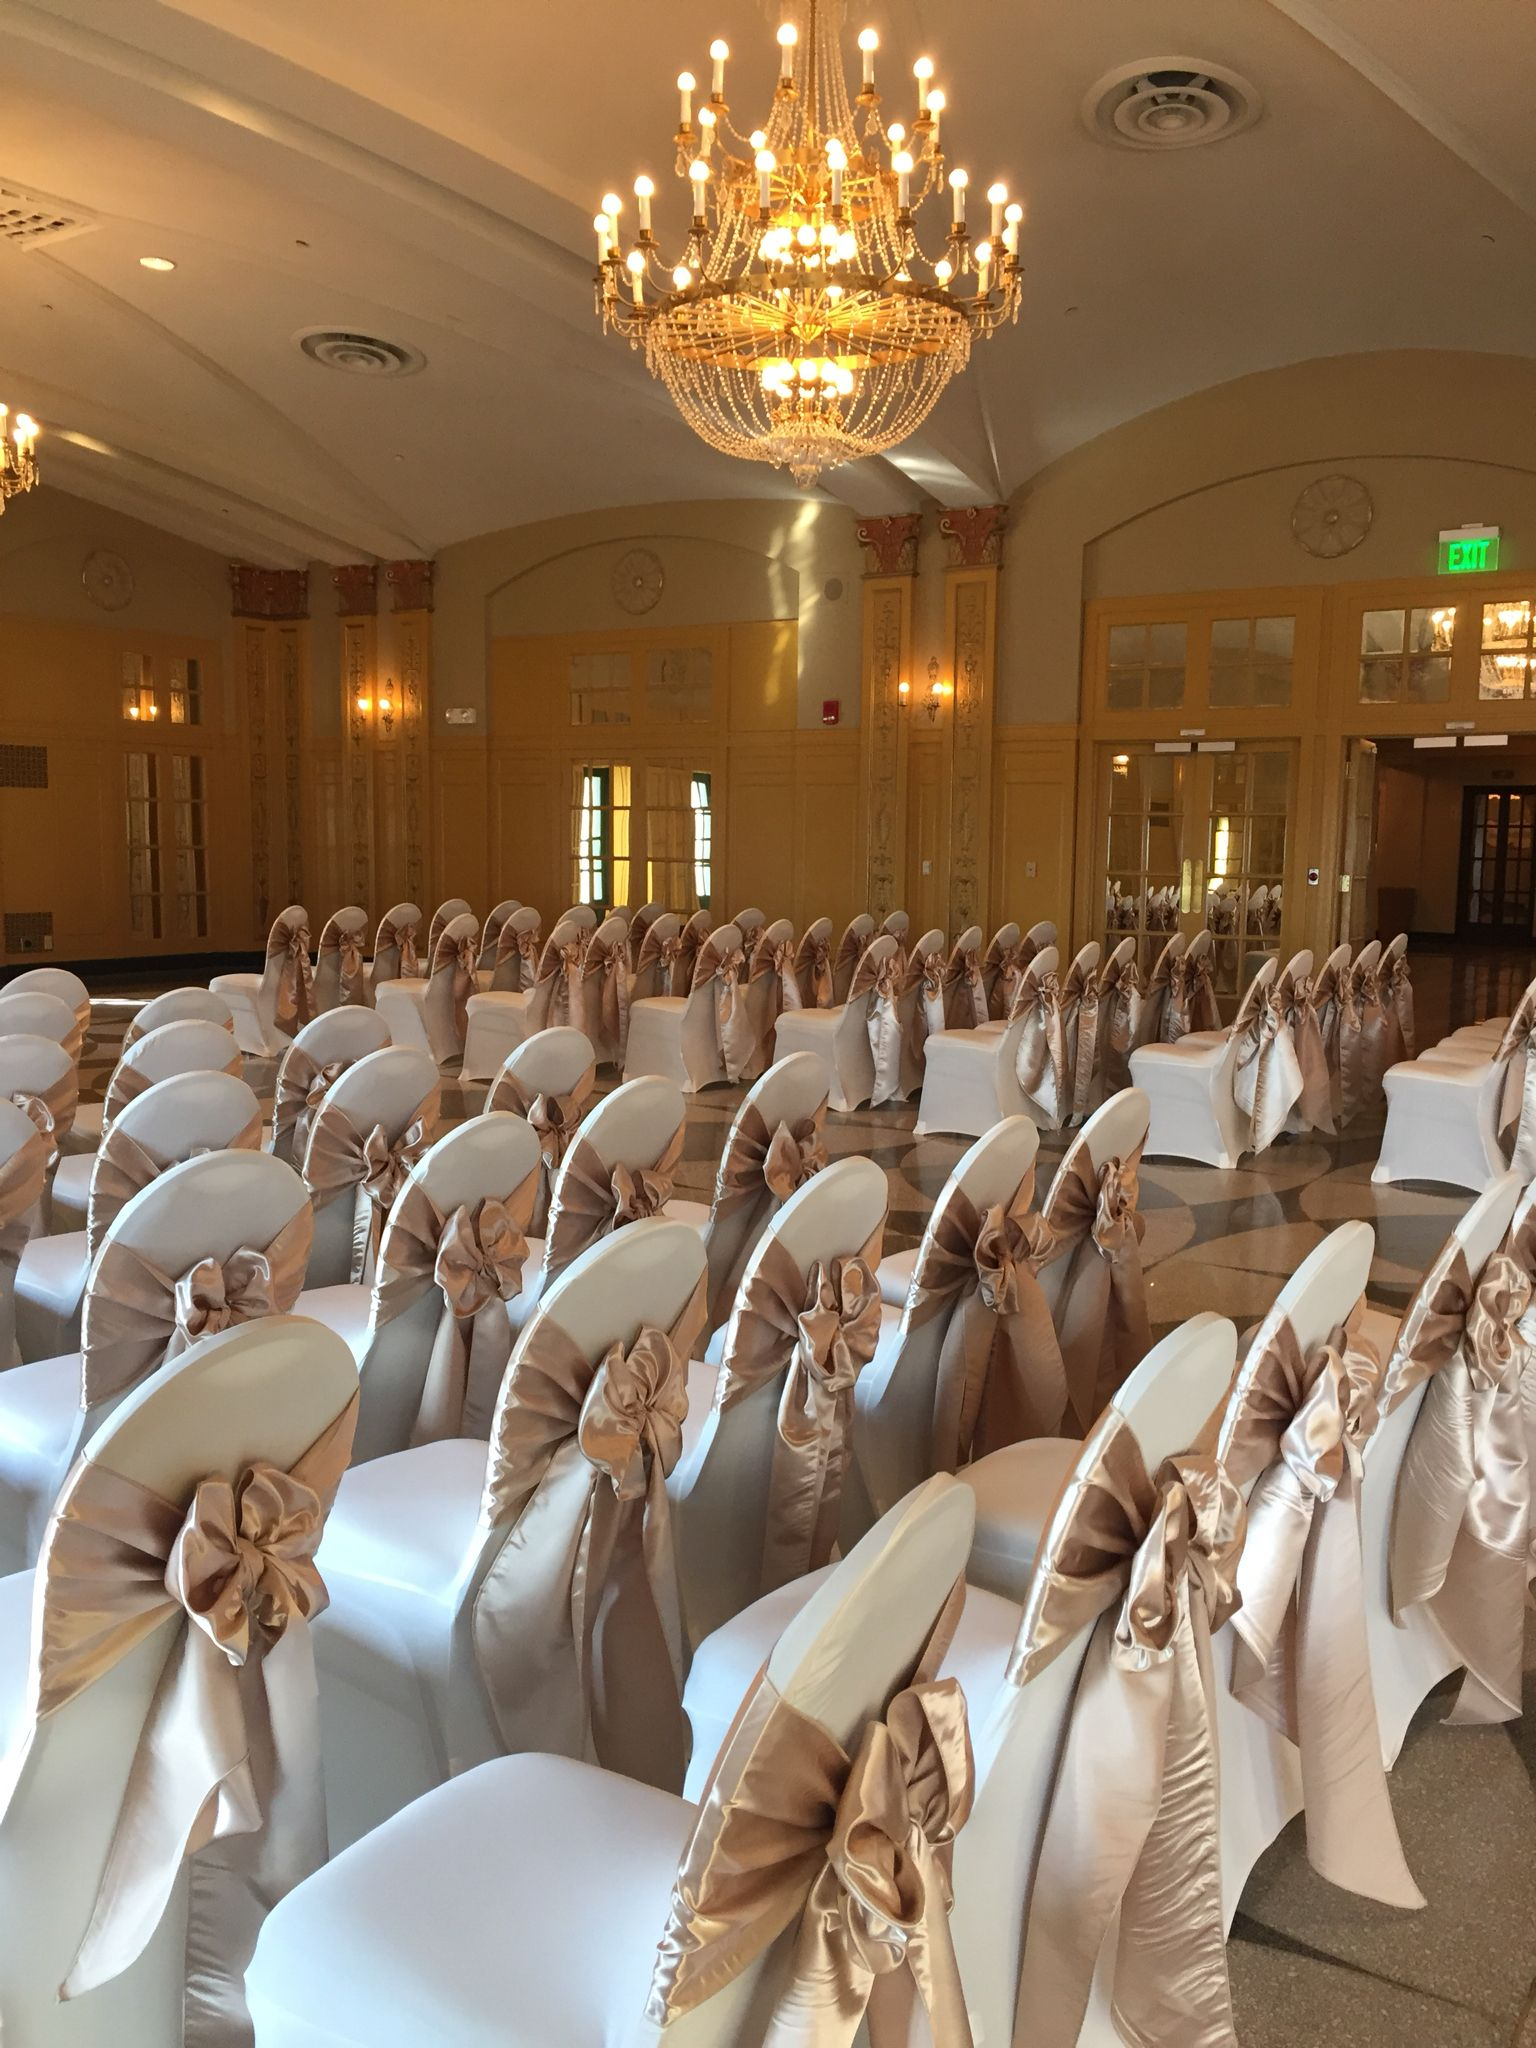 Spandex Chair Cover Rental Atlanta Beach Chaise Lounge Champagne Satin Sashes On Ivory Covers In The Congress Ballroom Hilton President